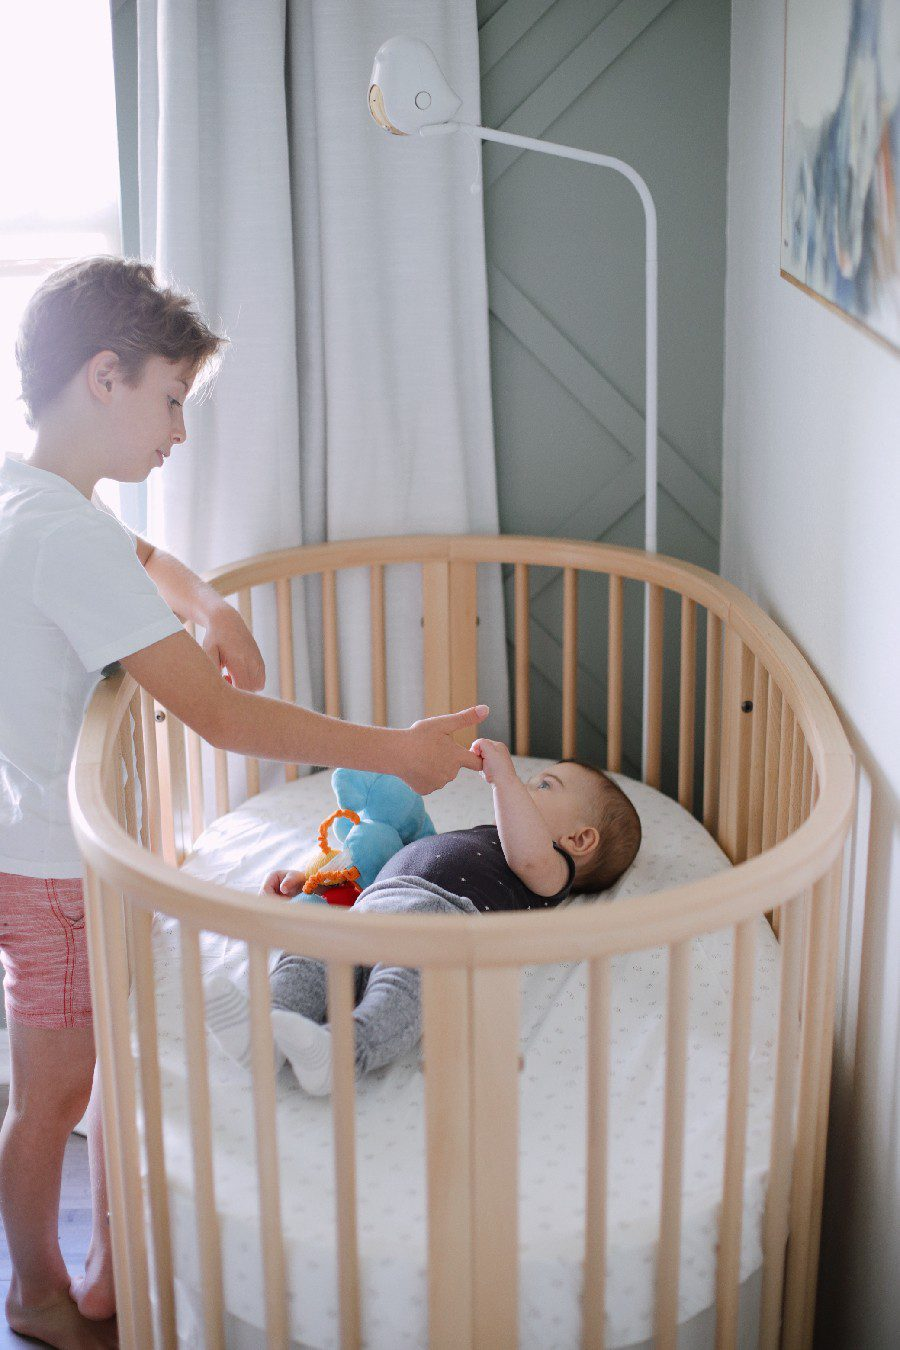 Big brother playing with baby in the stokke sleepi crib. The Best Baby Monitor for Twins - Cubo Ai Smart Baby Monitor Review | Best Baby Monitor by popular Florida motherhood blog, Fresh Mommy Blog: image of a young boy standing next to a baby laying in a stokke sleepi crib.